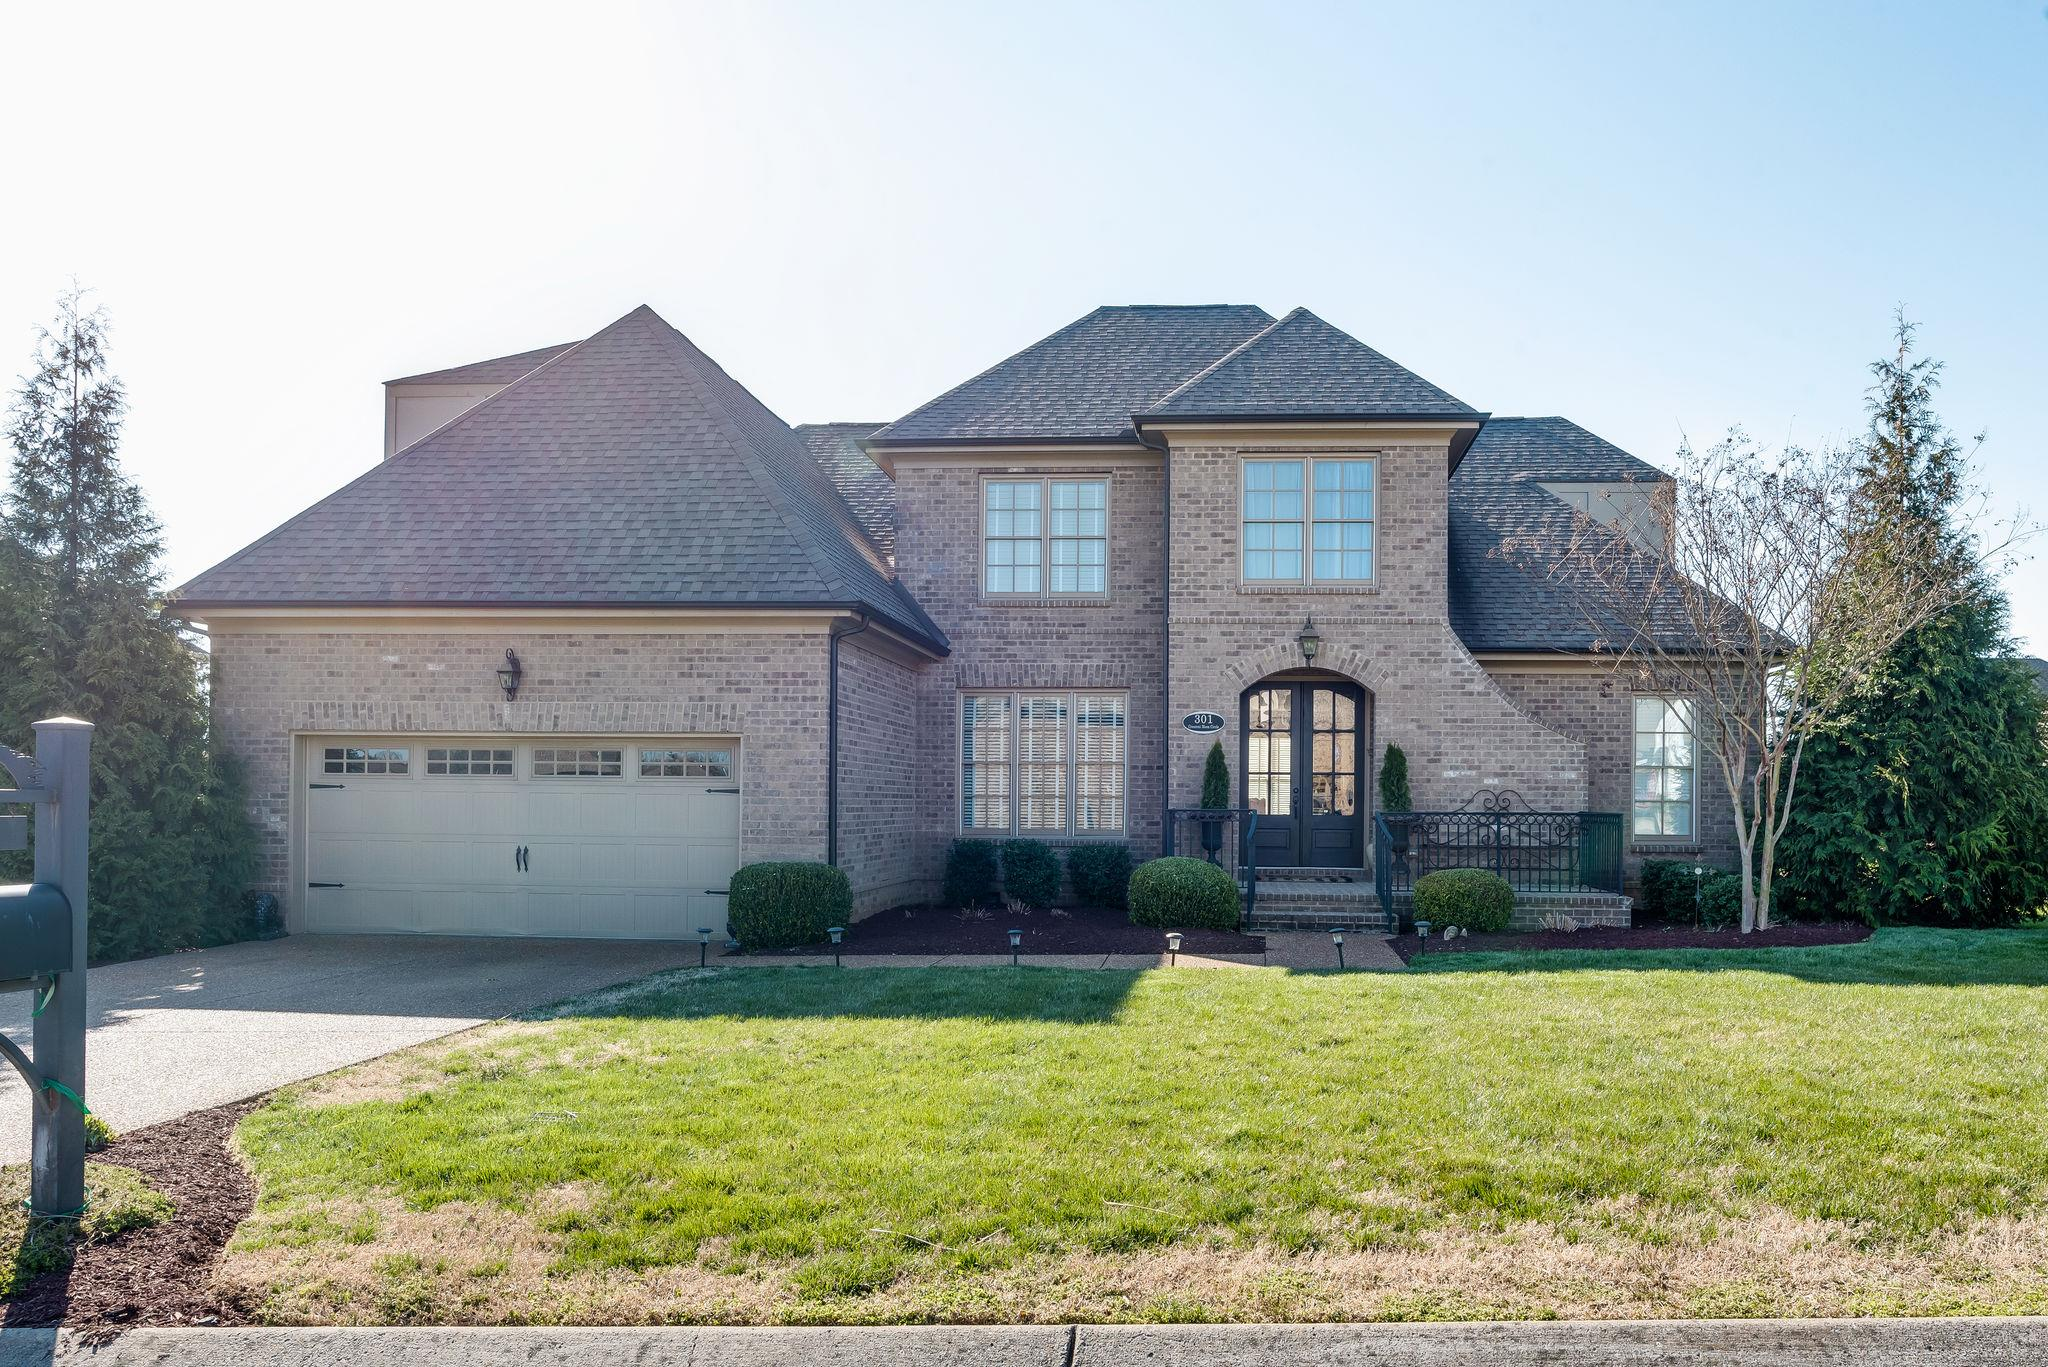 301 Crescent Moon Cir, Nolensville, TN 37135 - Nolensville, TN real estate listing